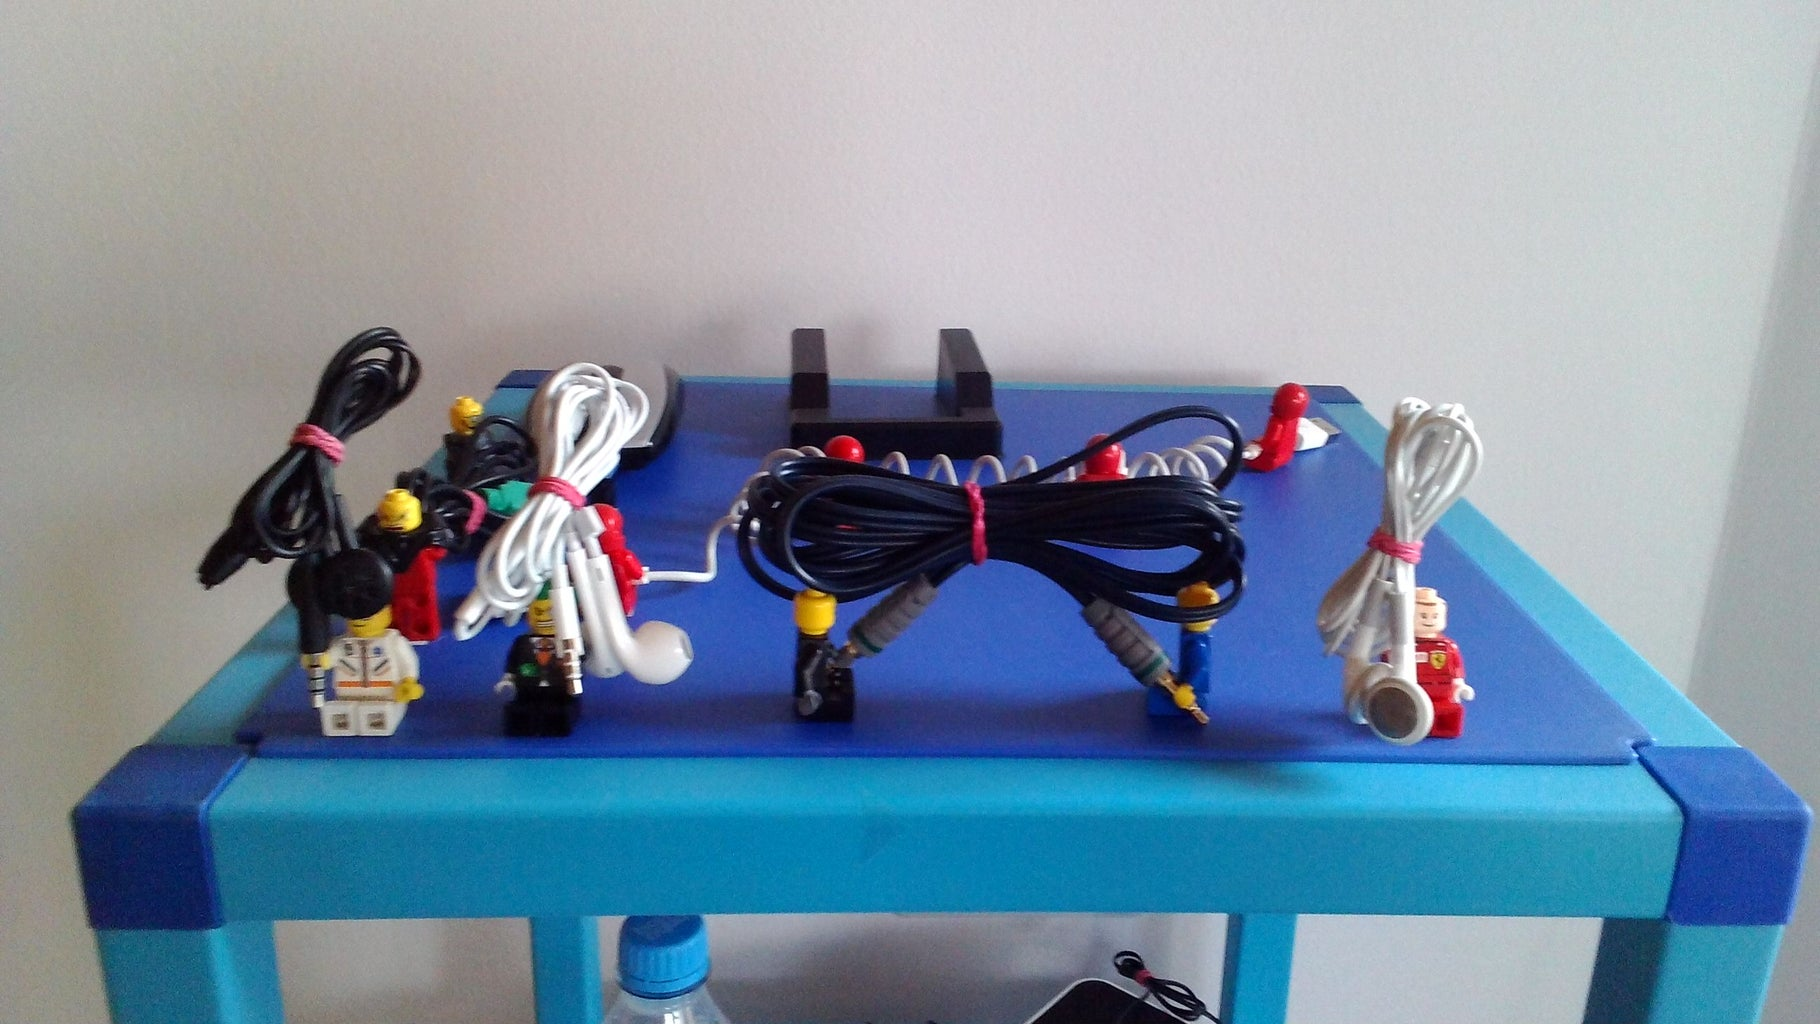 Lego Cable Holder